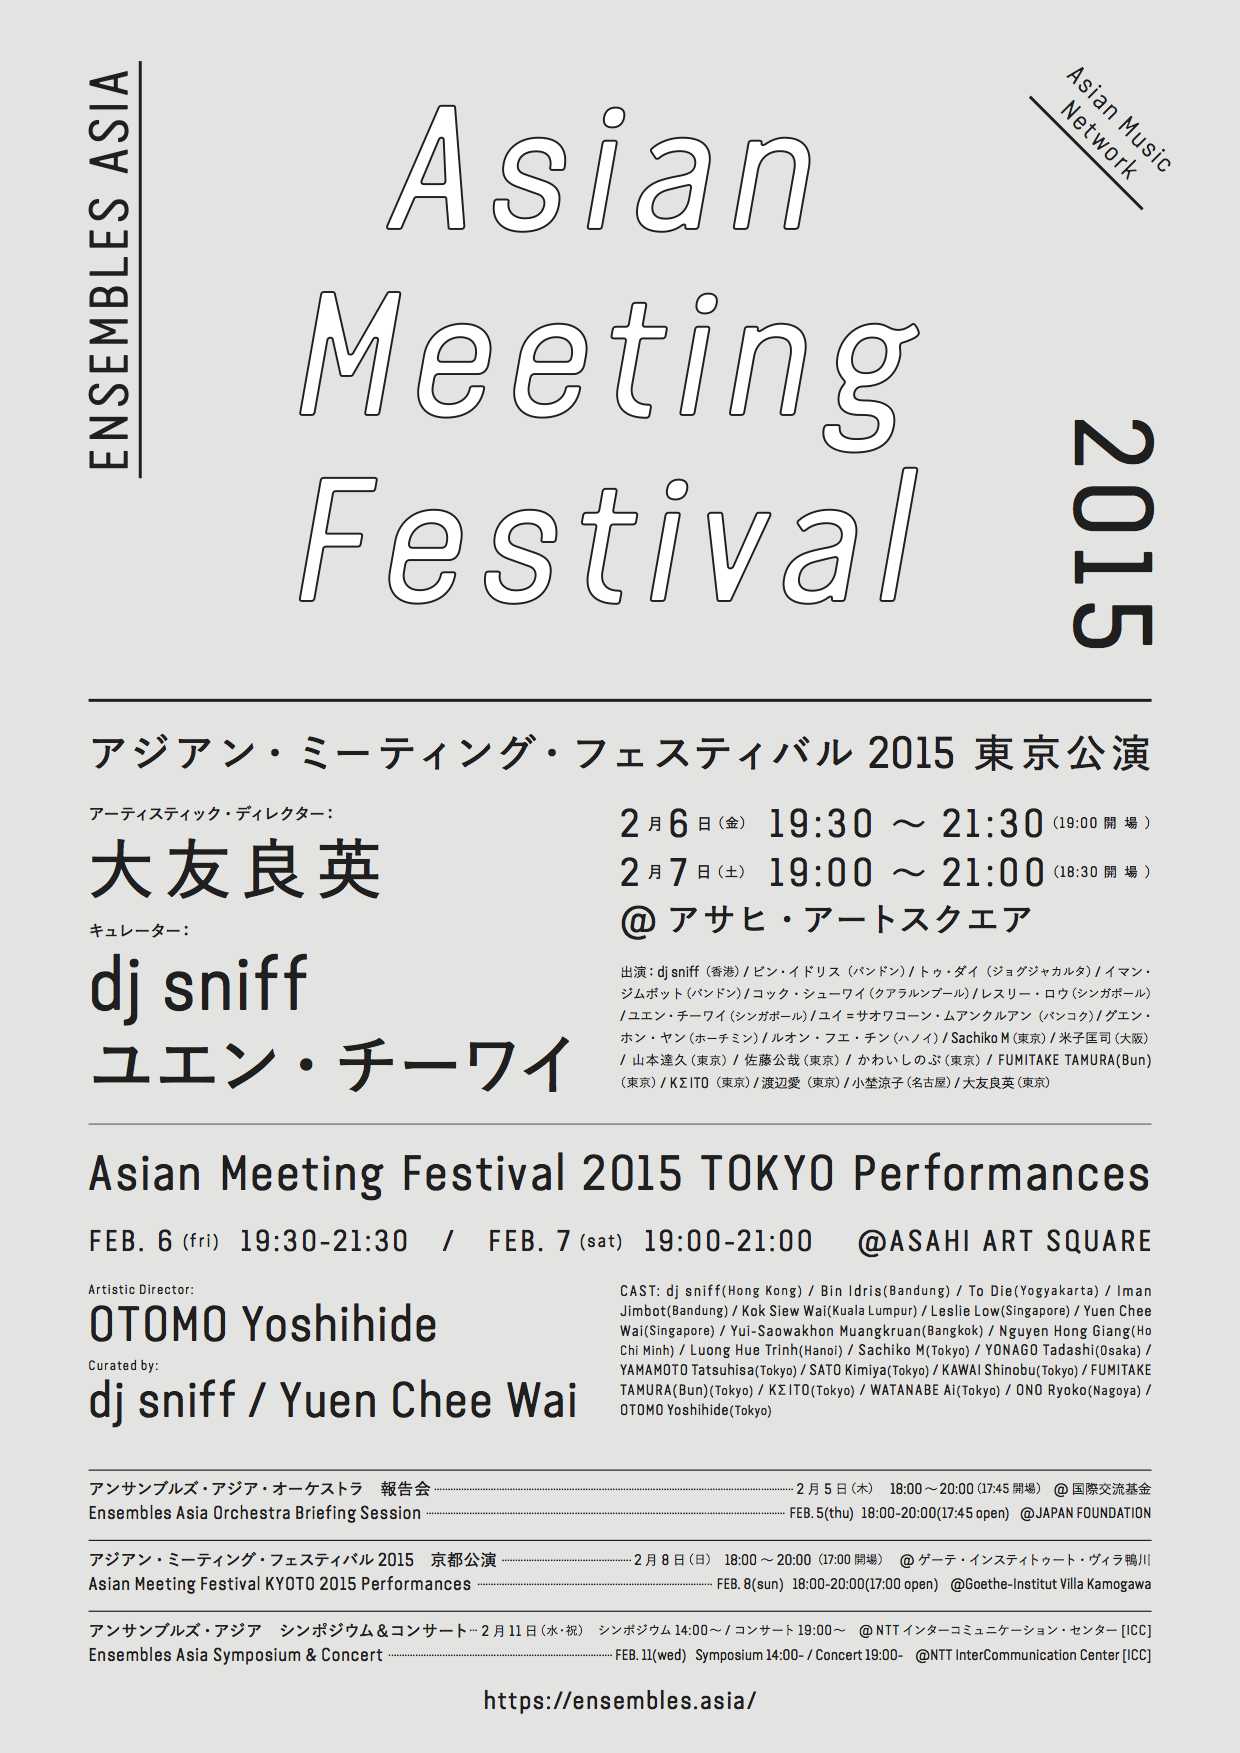 AsianMeetingFes-2015.jpg